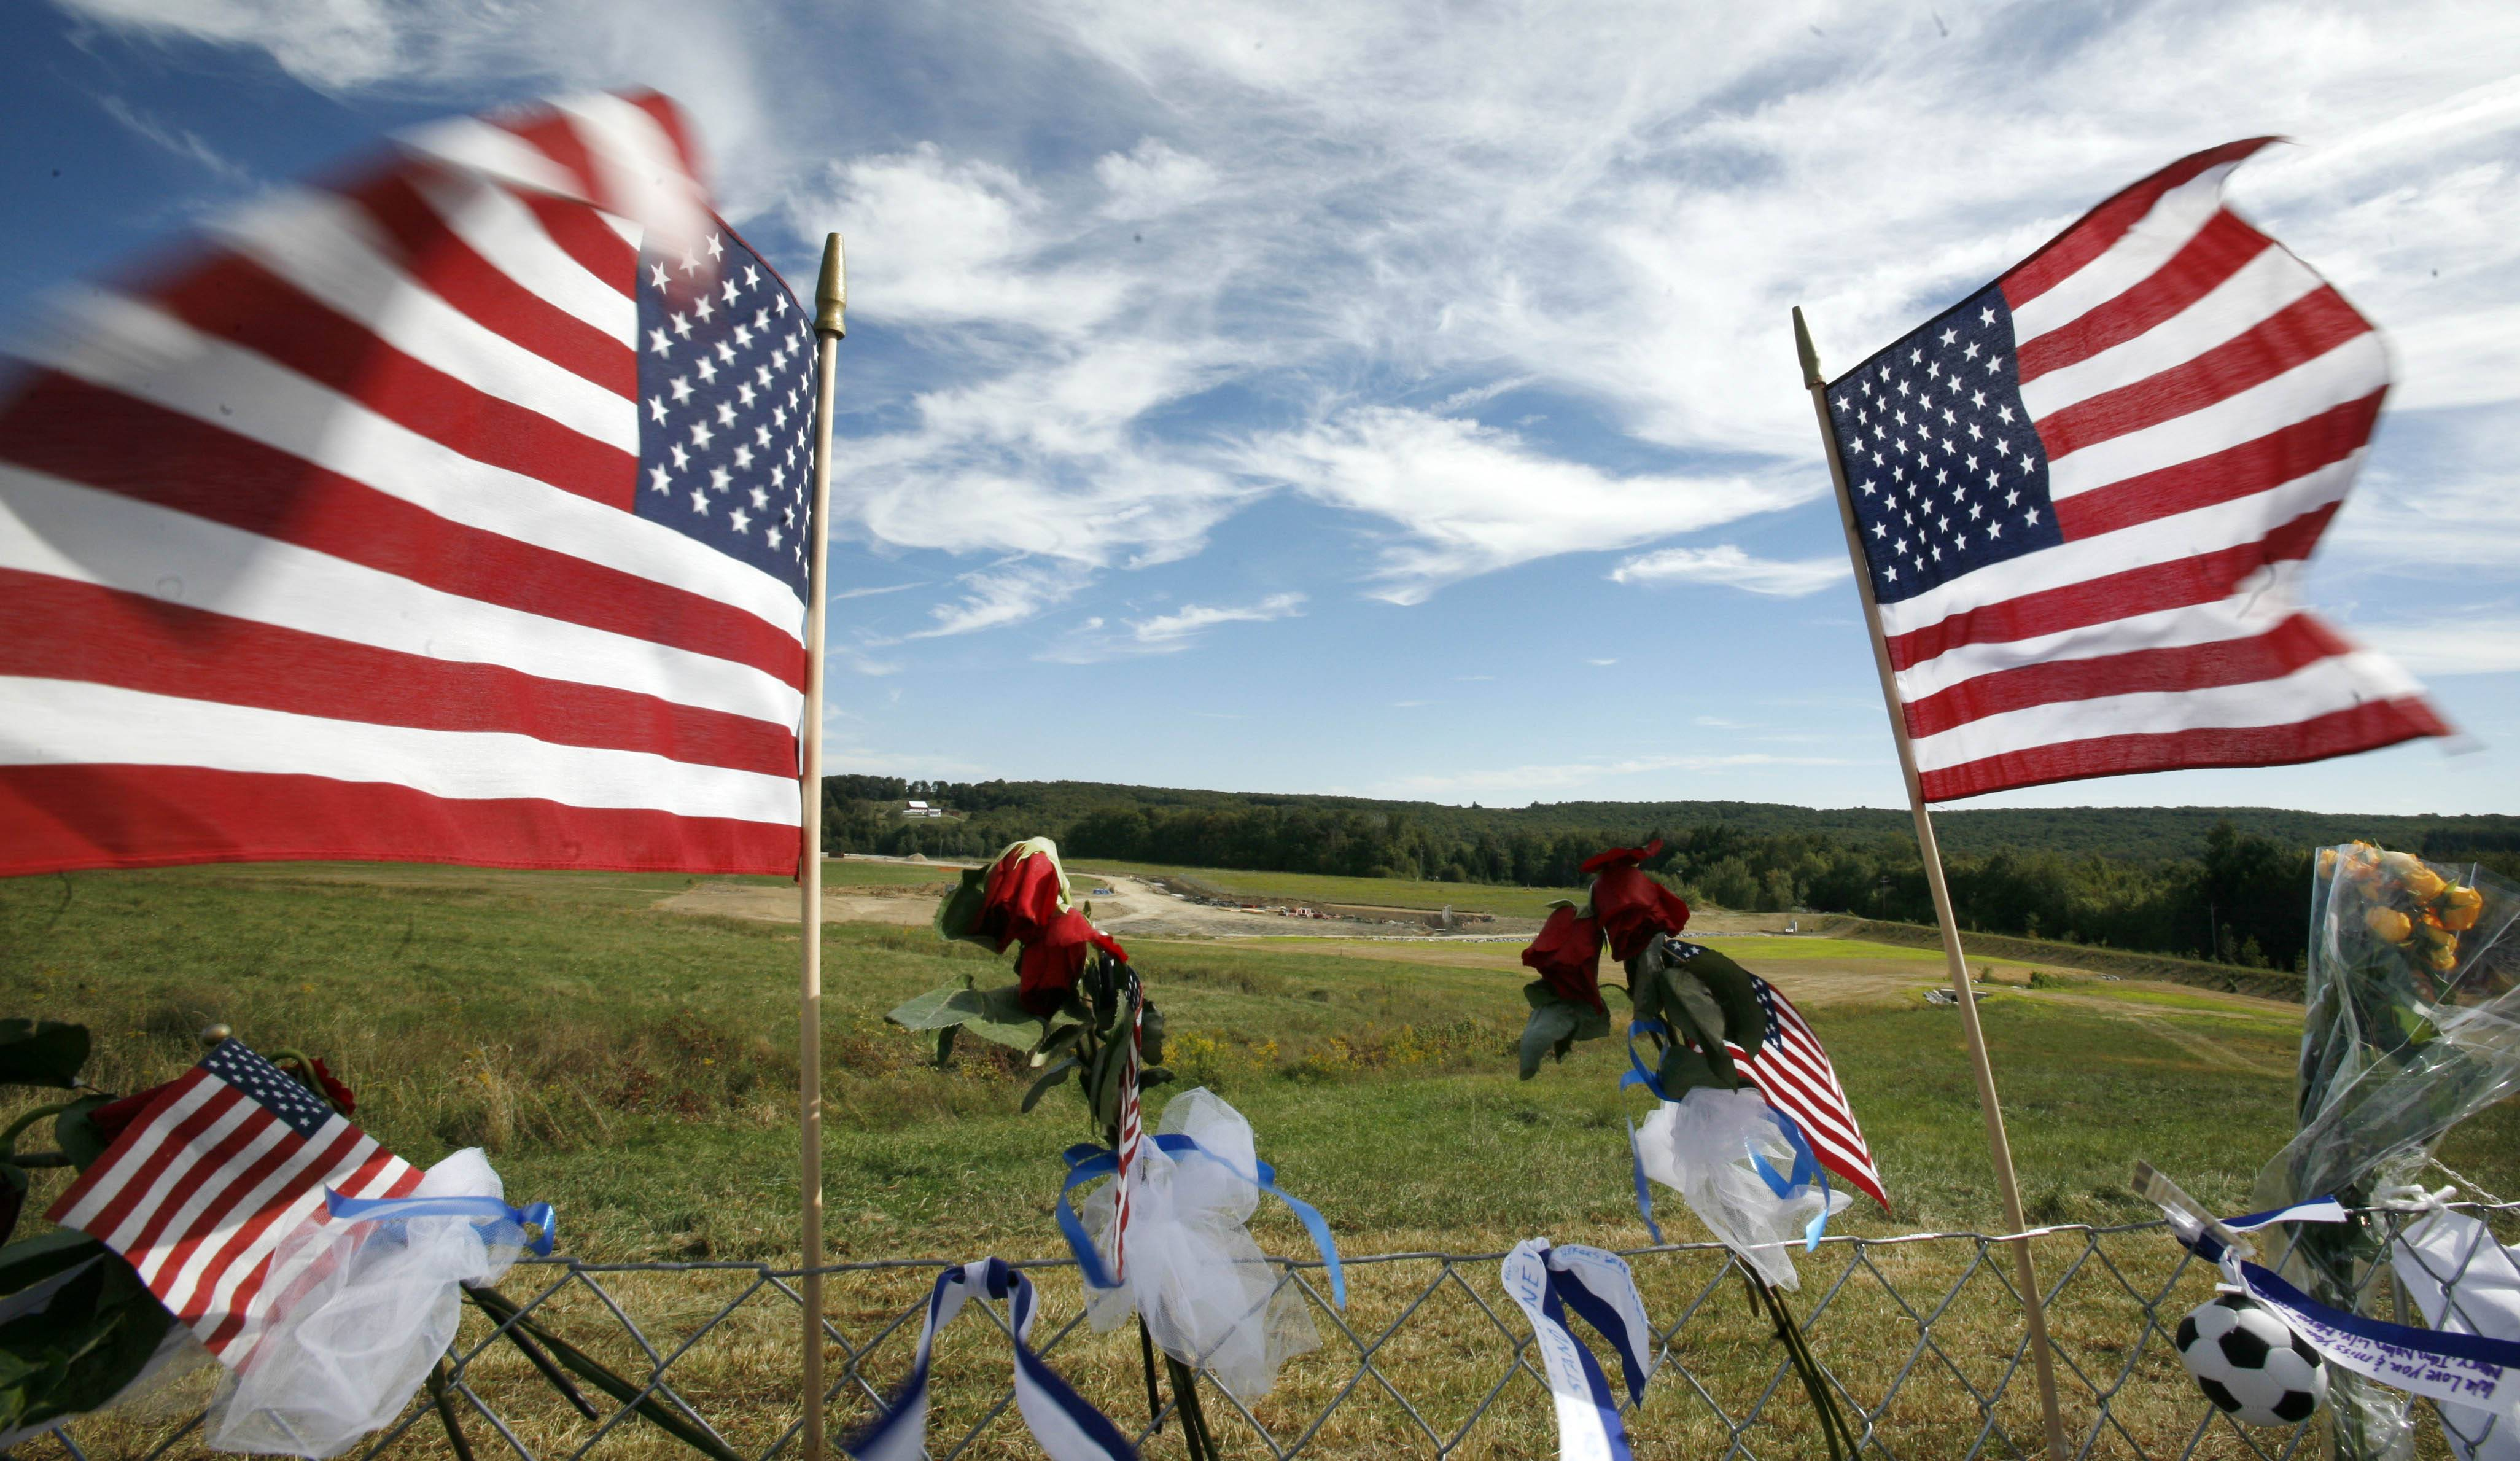 Flags frame the crash site of United Flight 93 at the temporary Flight 93 memorial in Shanksville, Pa.